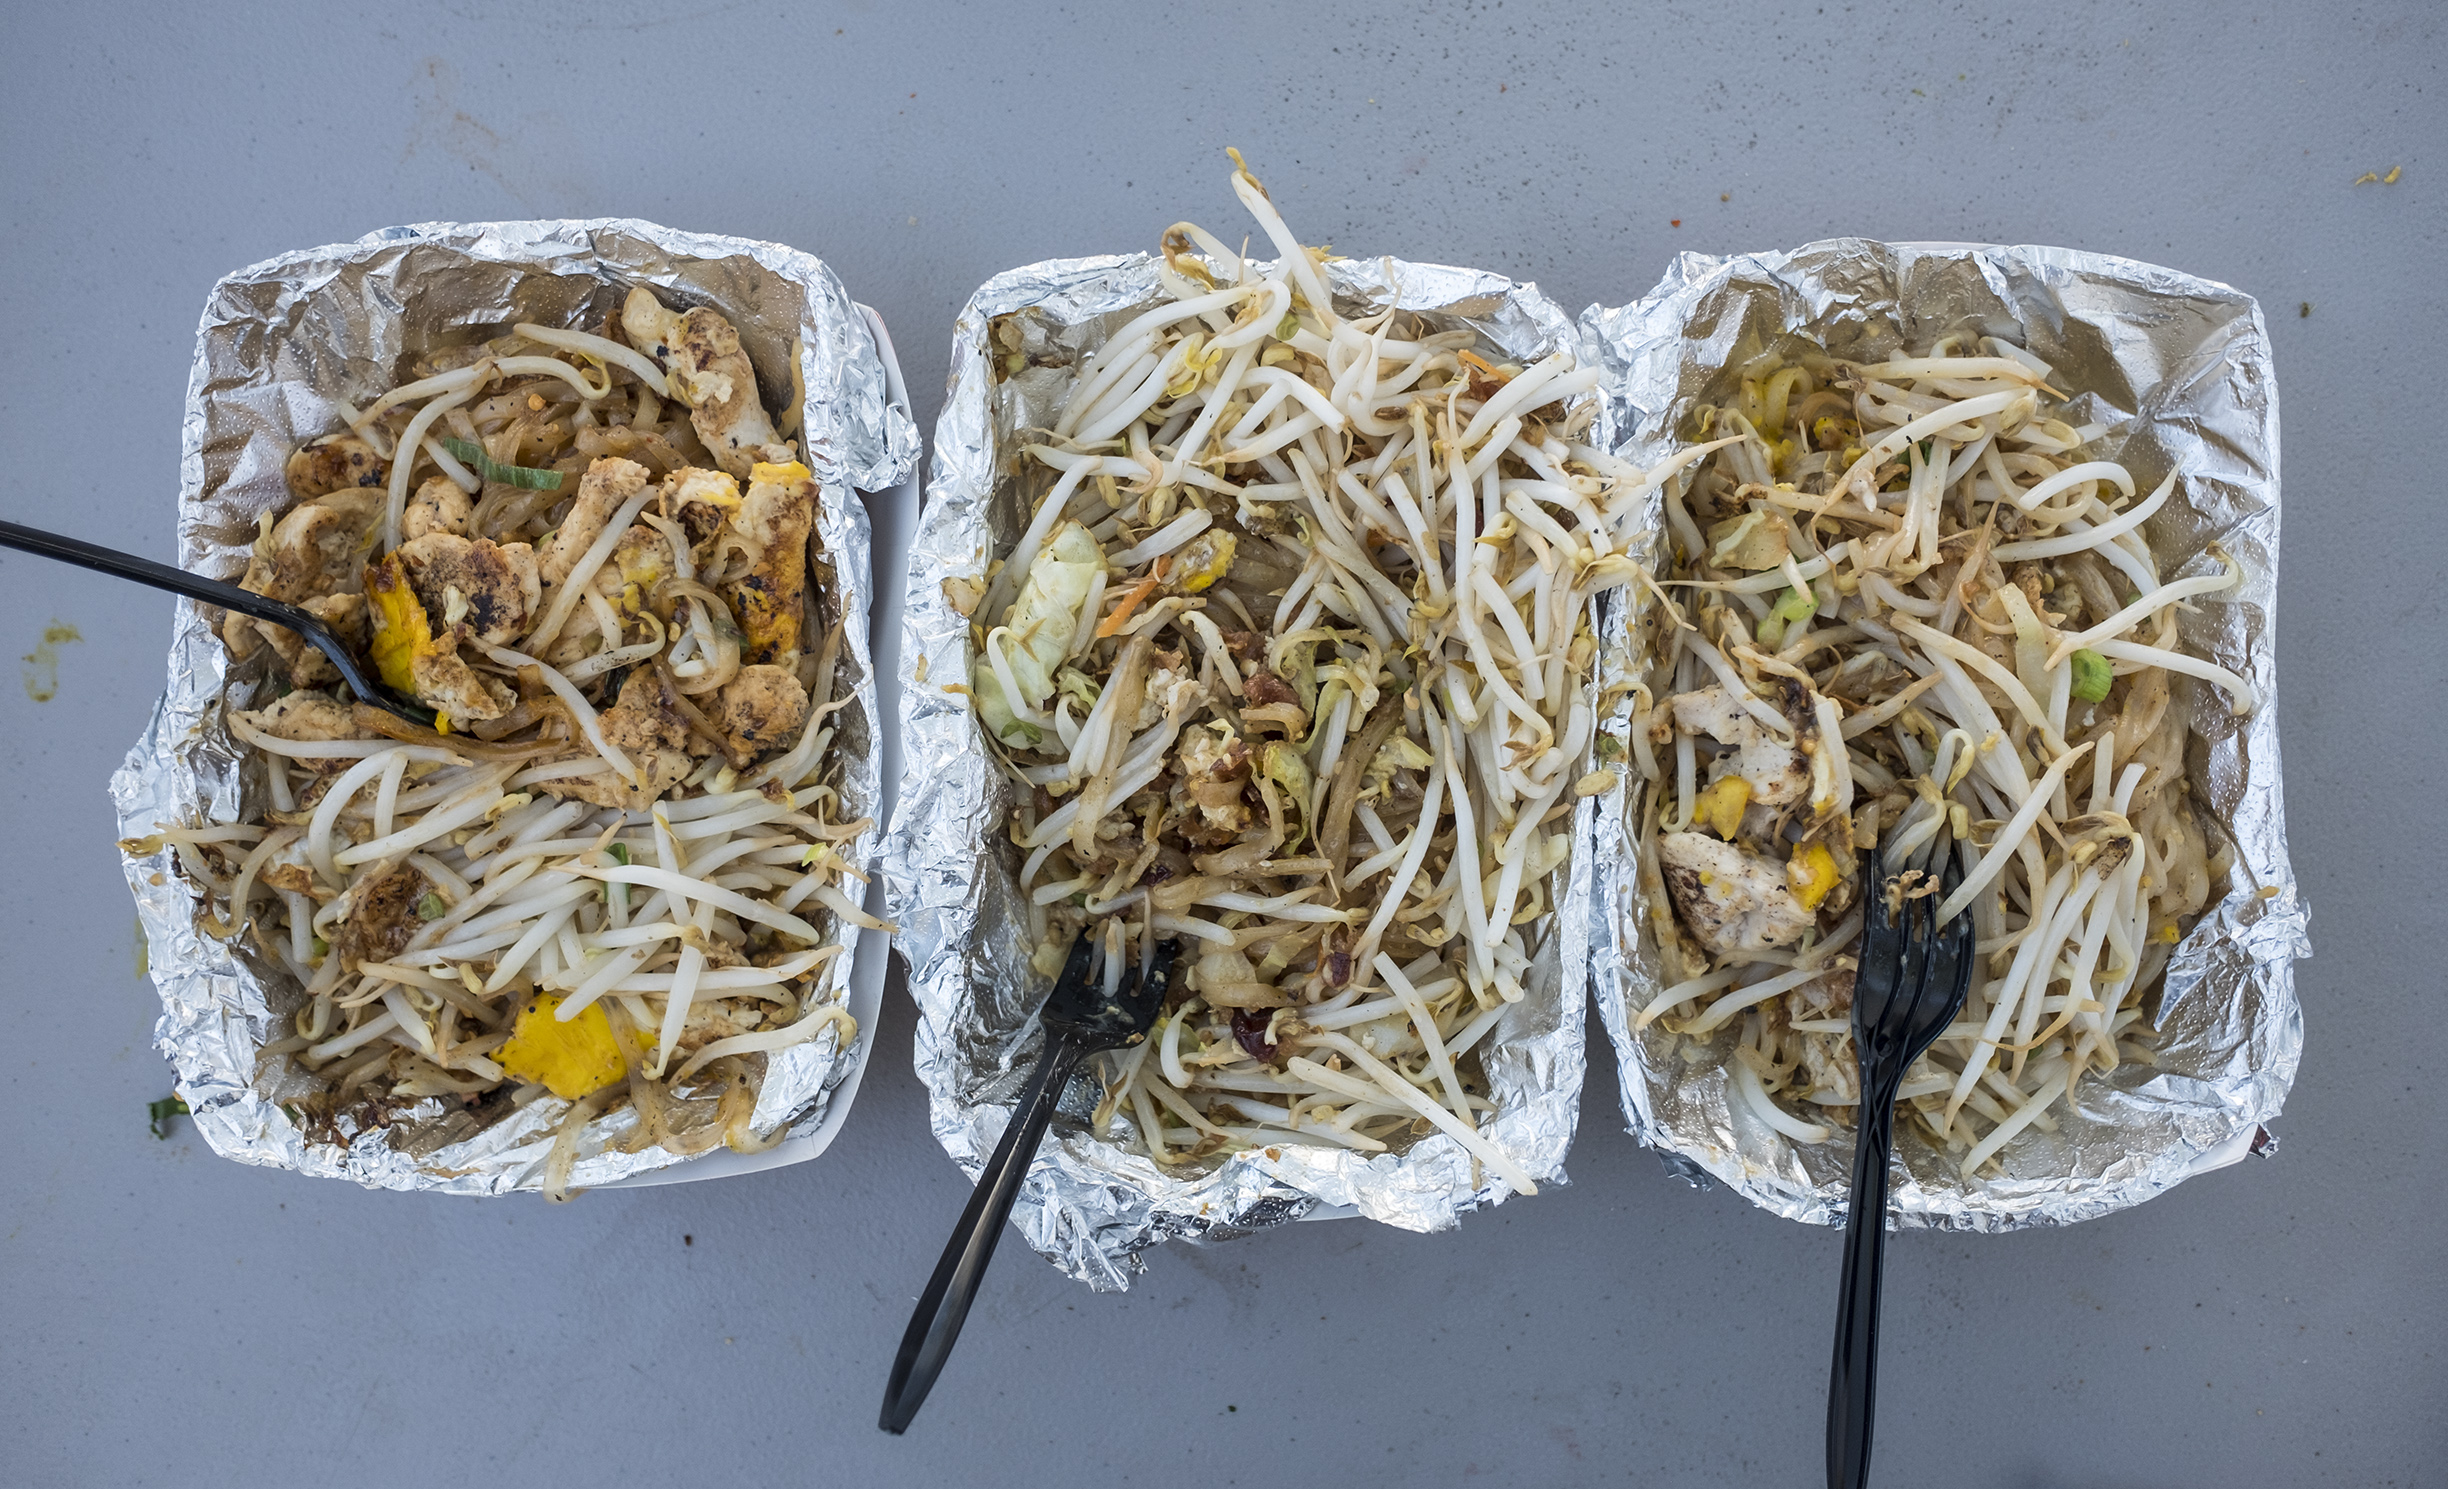 Three takes on Pad Thai (left to right: Chaiya, Ayutthaya, and Chiang-Mai).